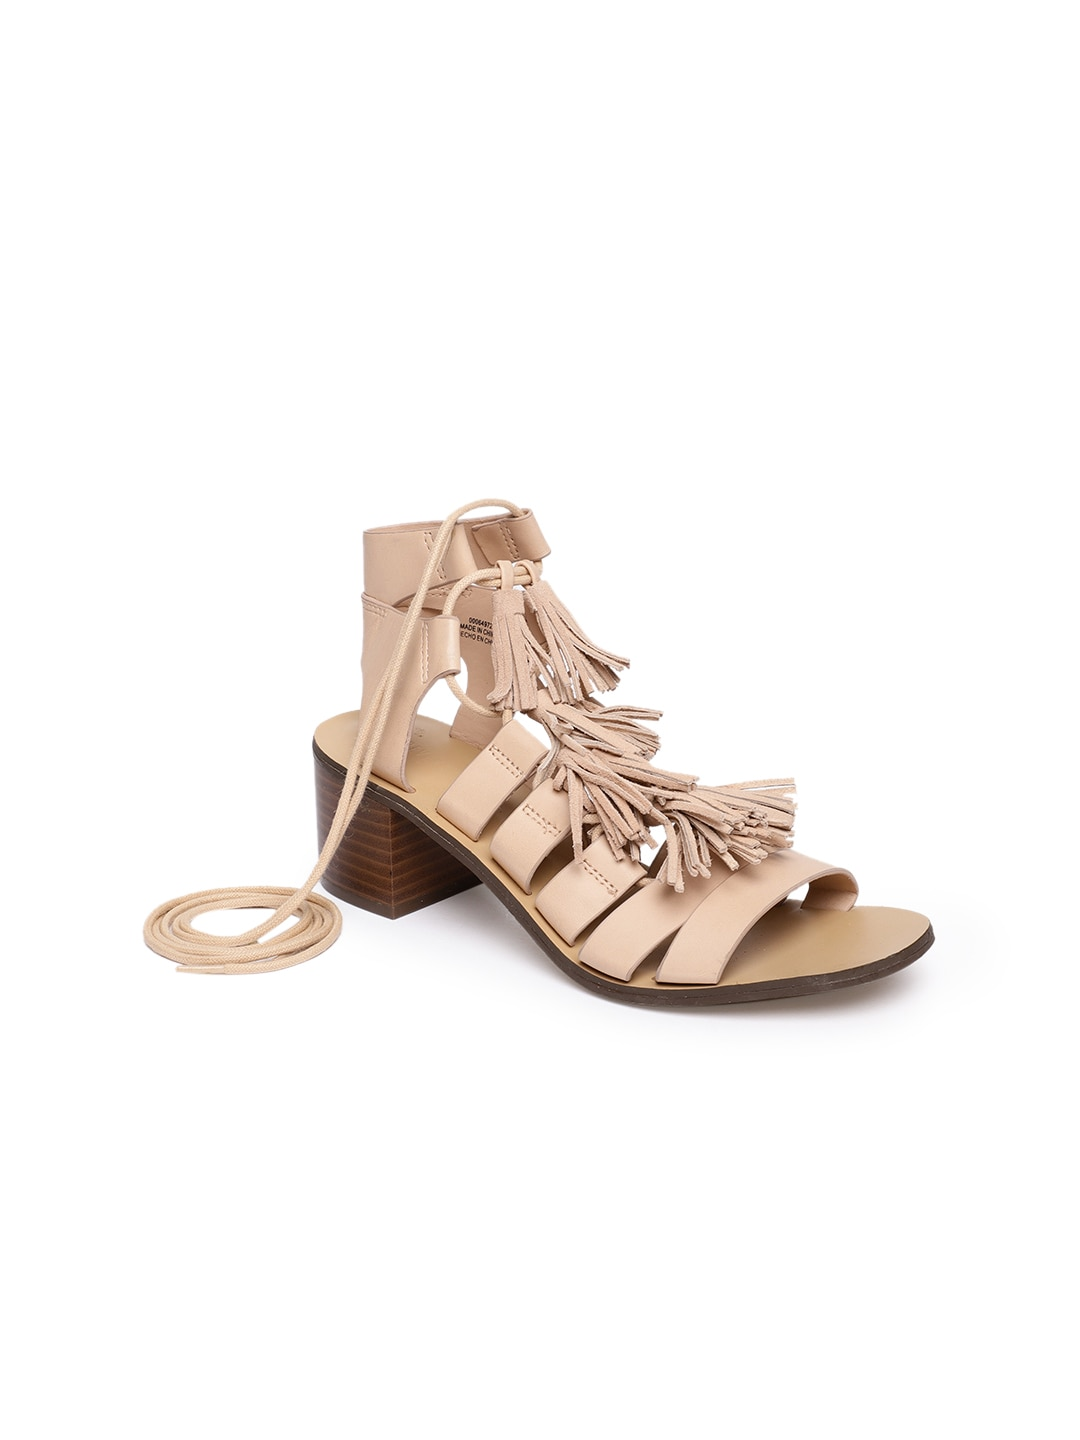 ef576d1422a Forever 21 Sandal Shoes - Buy Forever 21 Sandal Shoes online in India